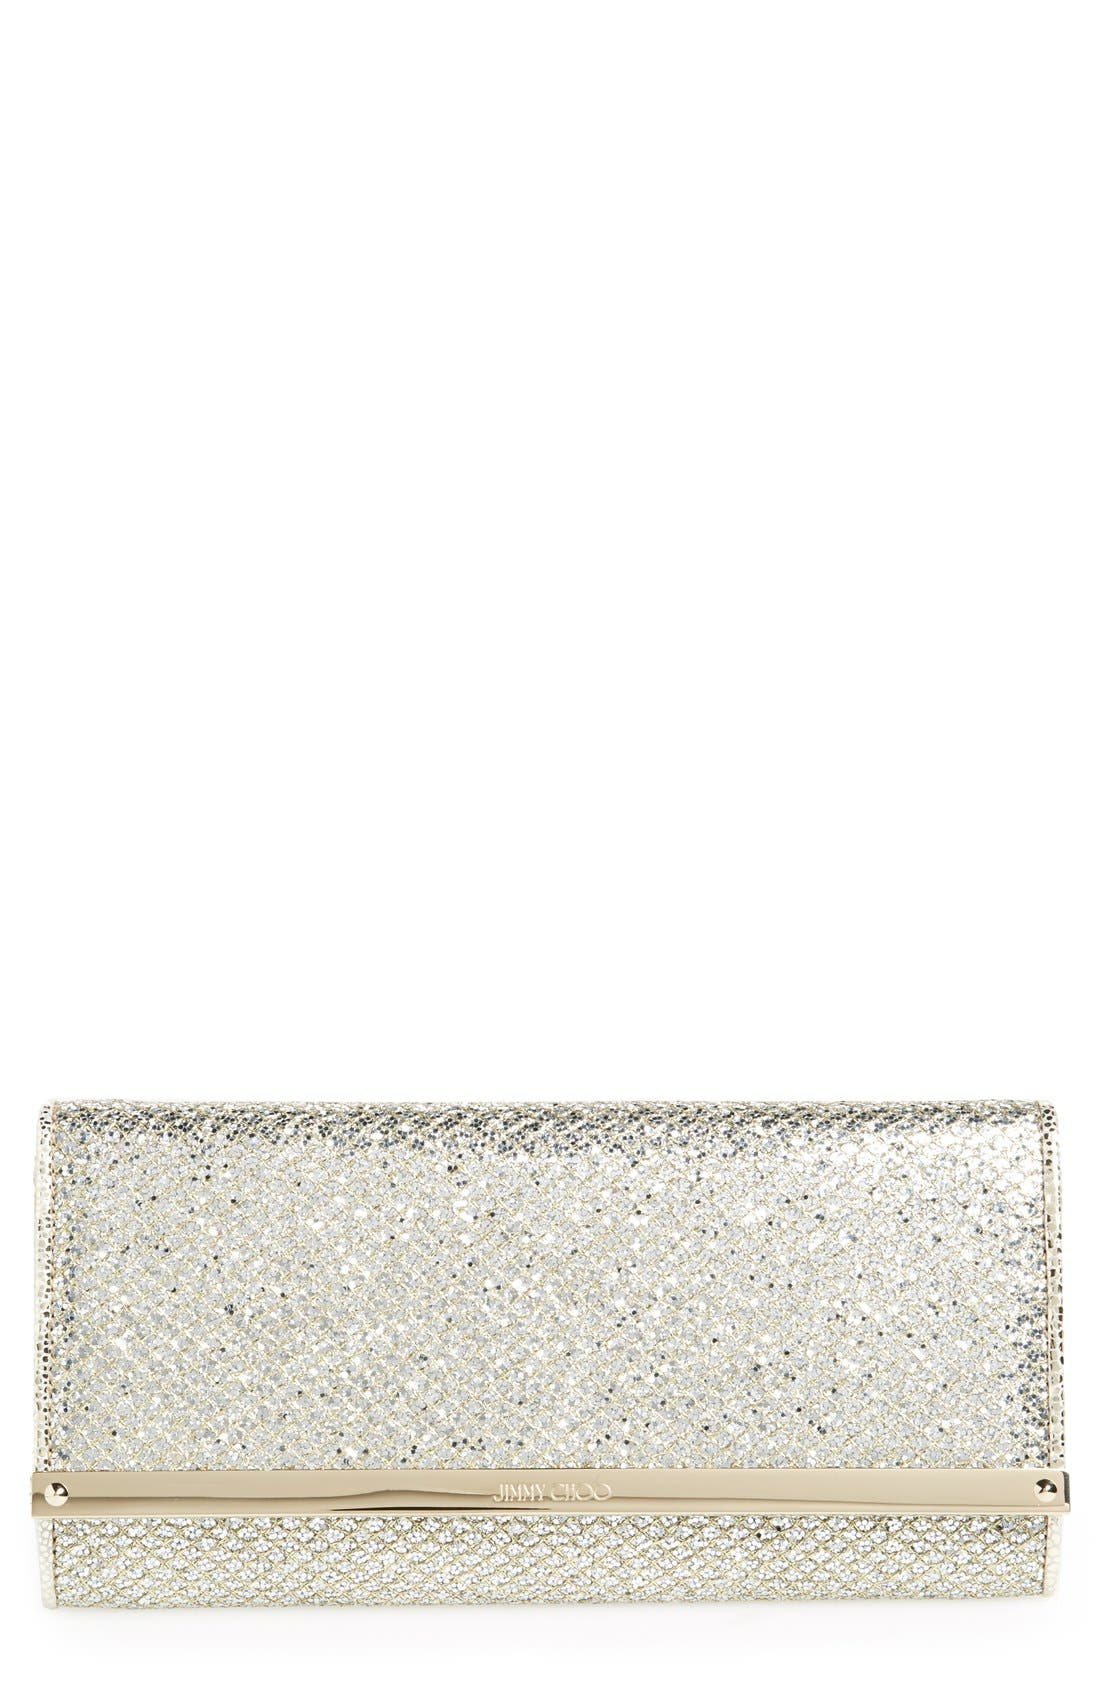 JIMMY CHOO 'Milla' Glitter Wallet on a Chain